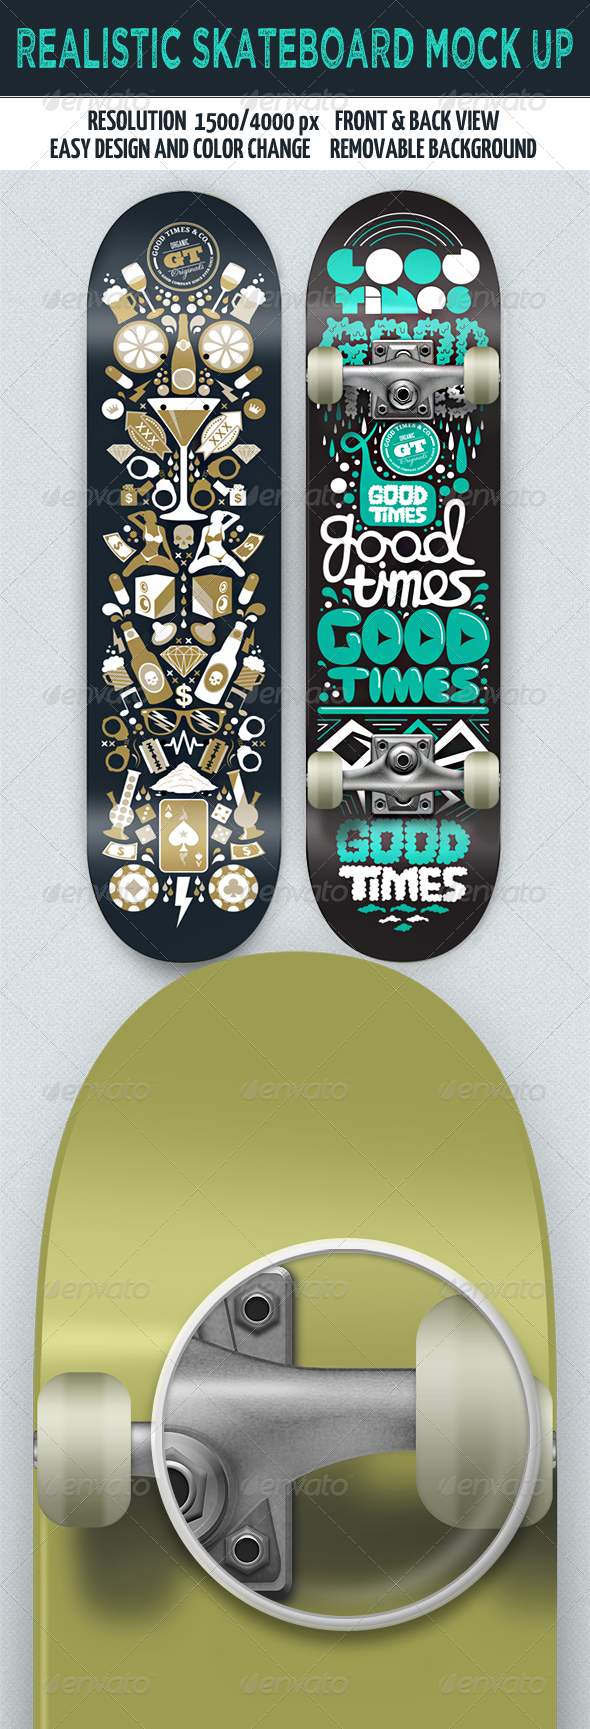 Grapulo's Skateboard Mock-Up - Miscellaneous Product Mock-Ups